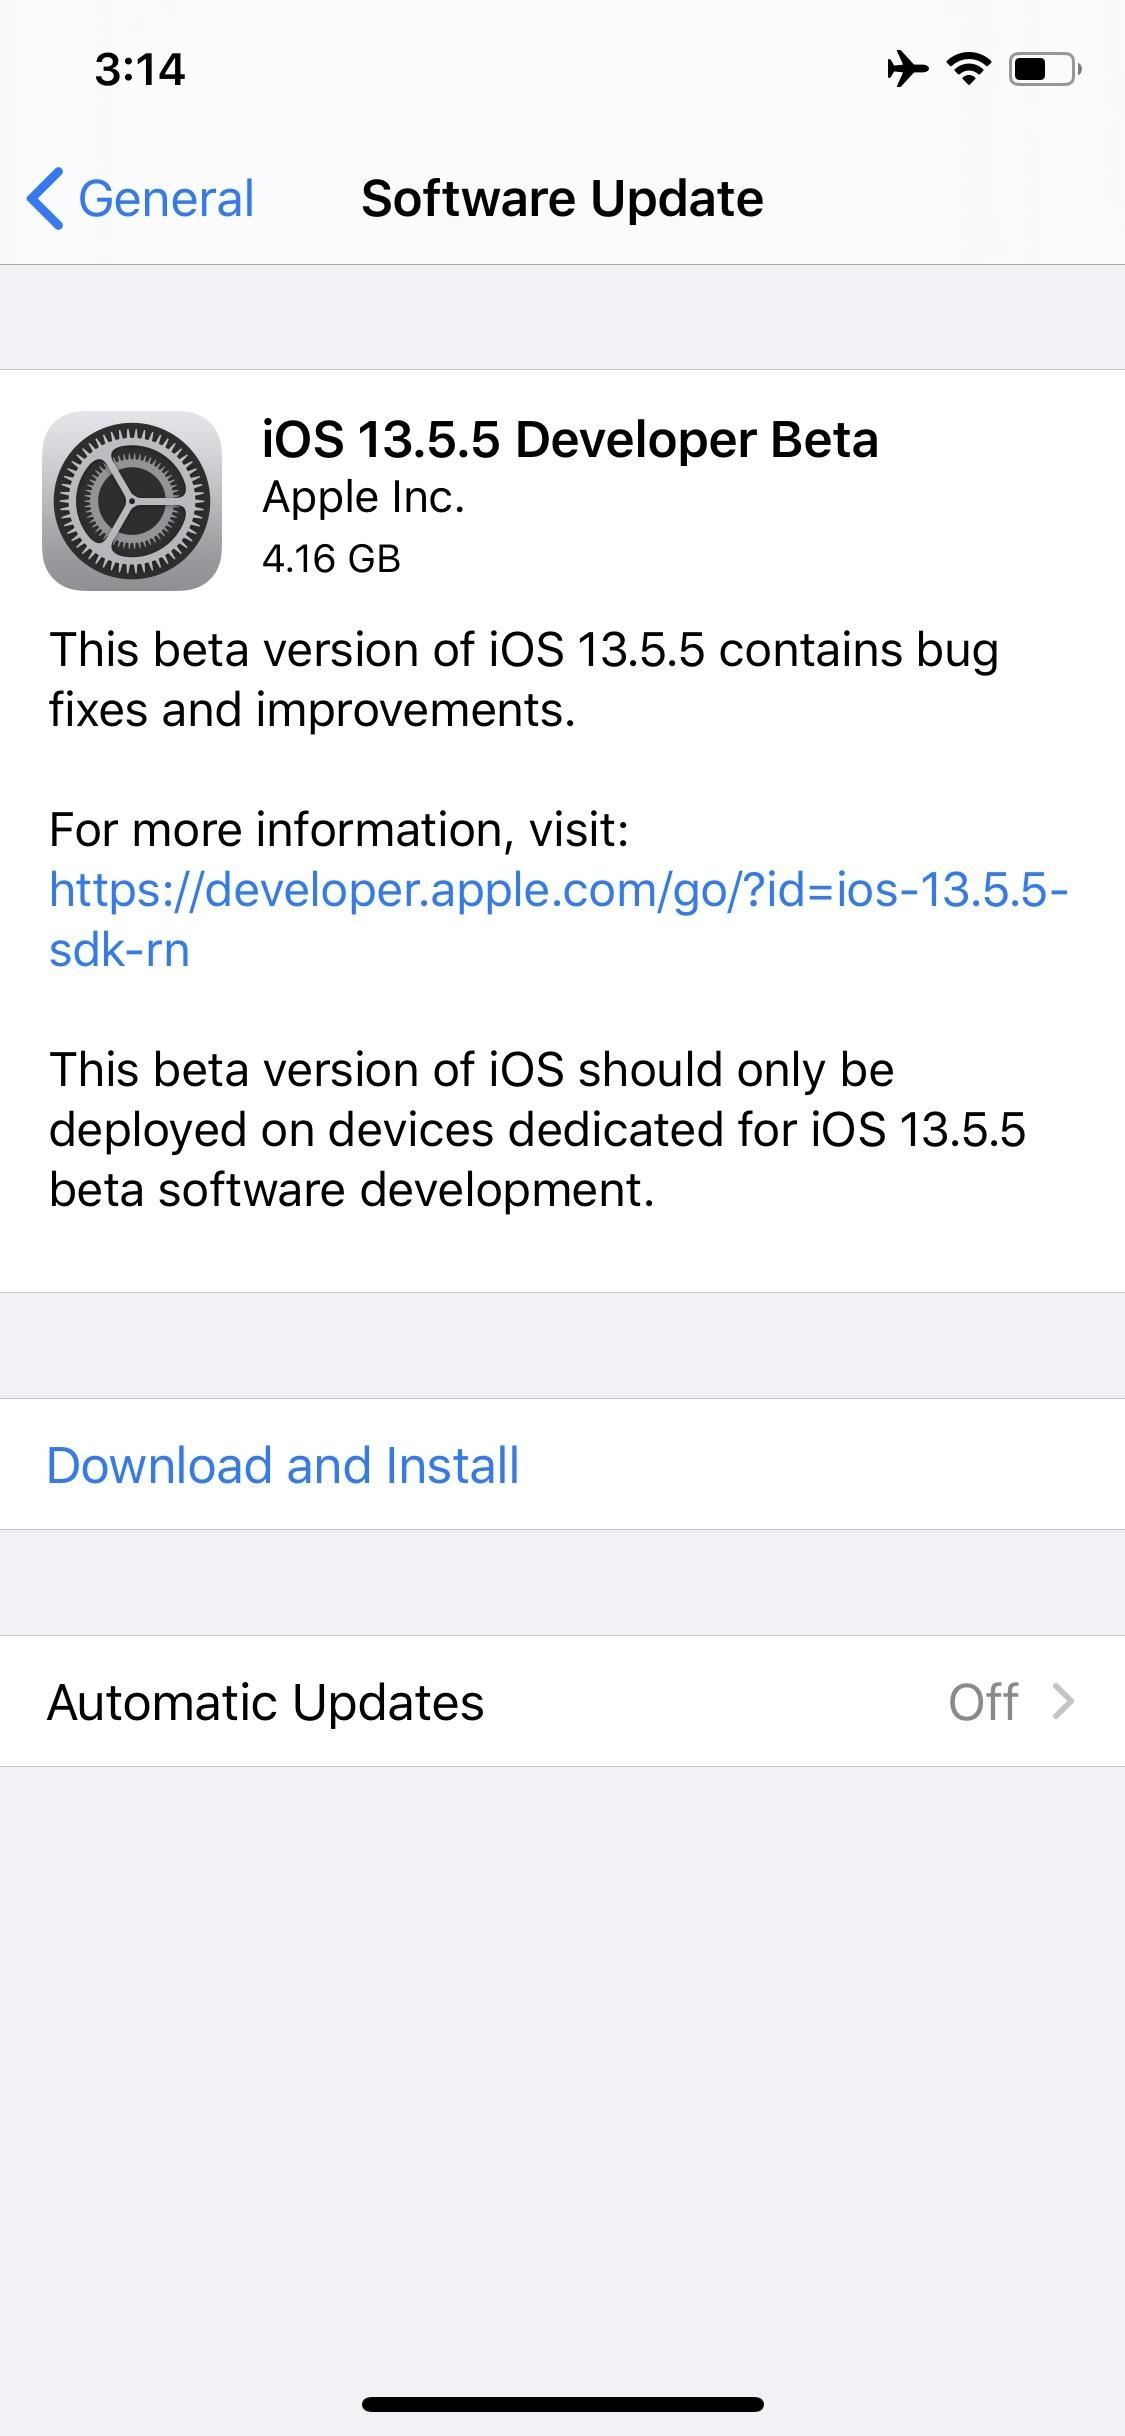 Apple's iOS 13.5.5 Developer Beta 1 Includes Evidence of Audio Support in Apple News+